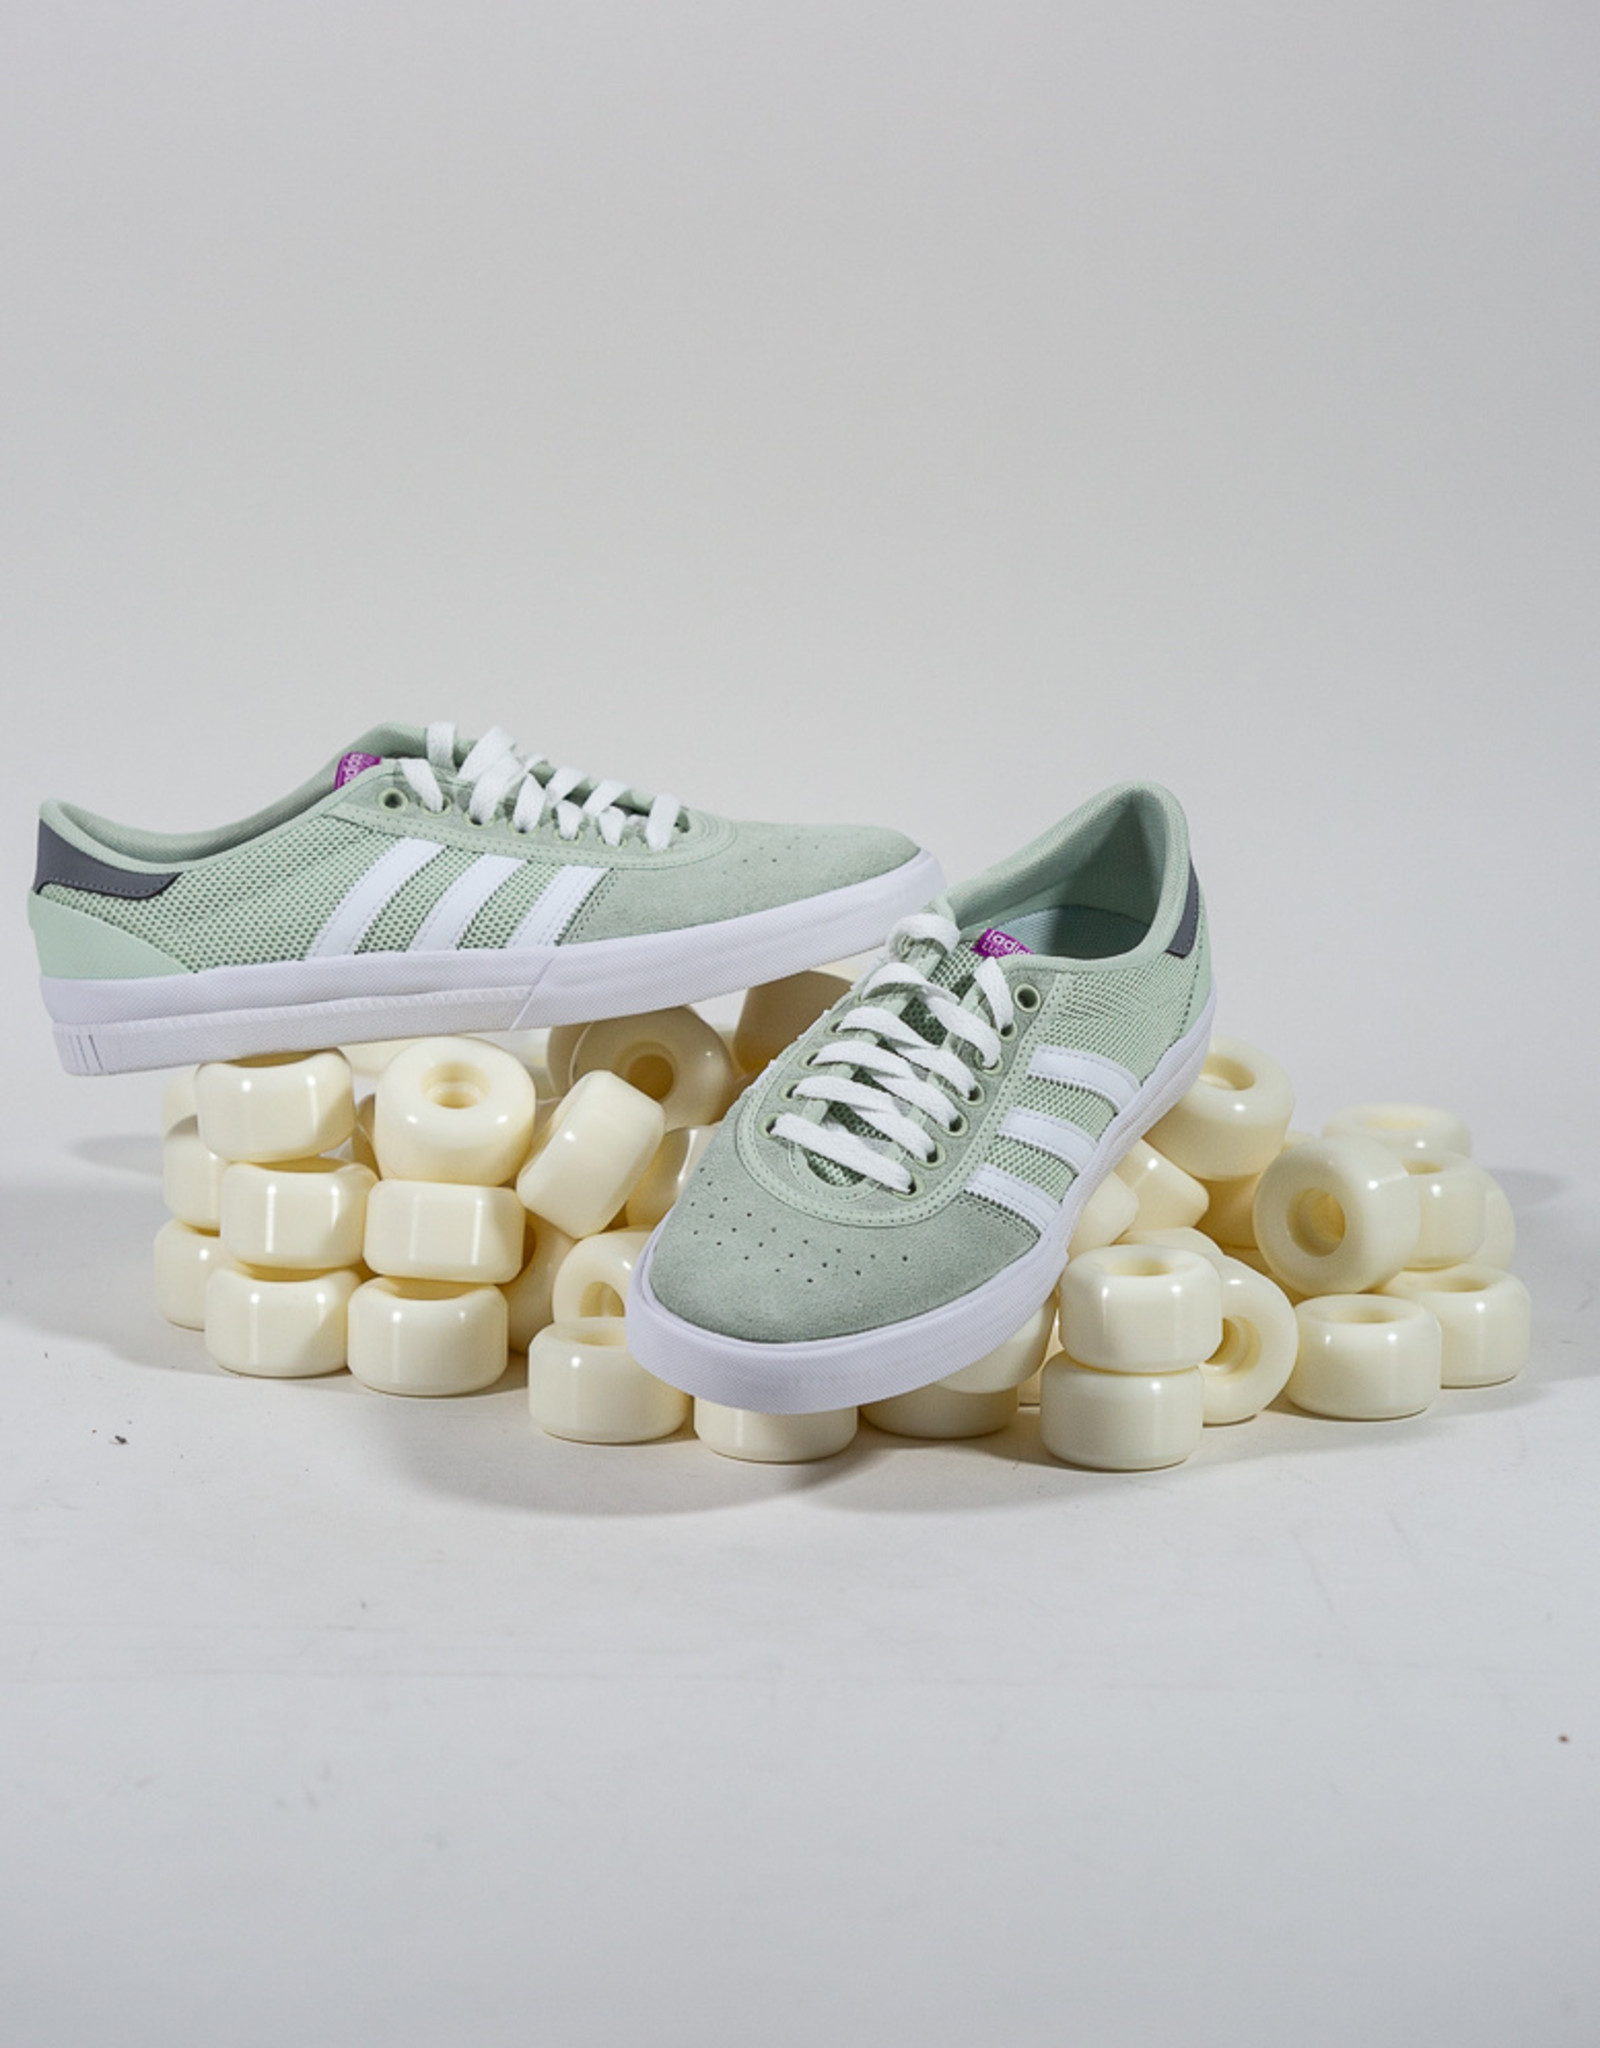 ADIDAS ADIDAS LUCAS PREMIER - LIGHT GREEN/WHITE